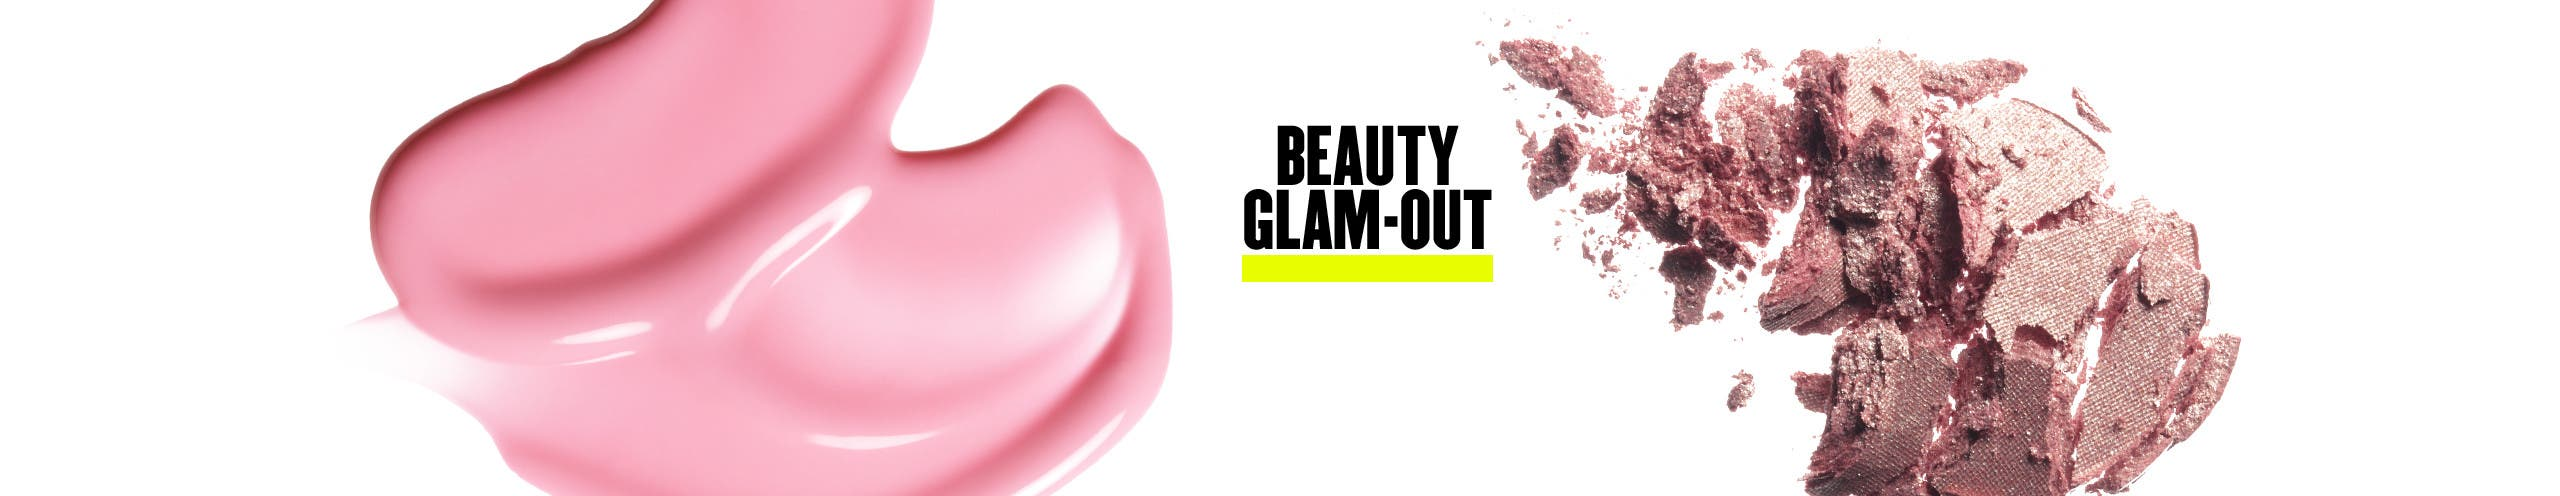 Beauty Glam Out.